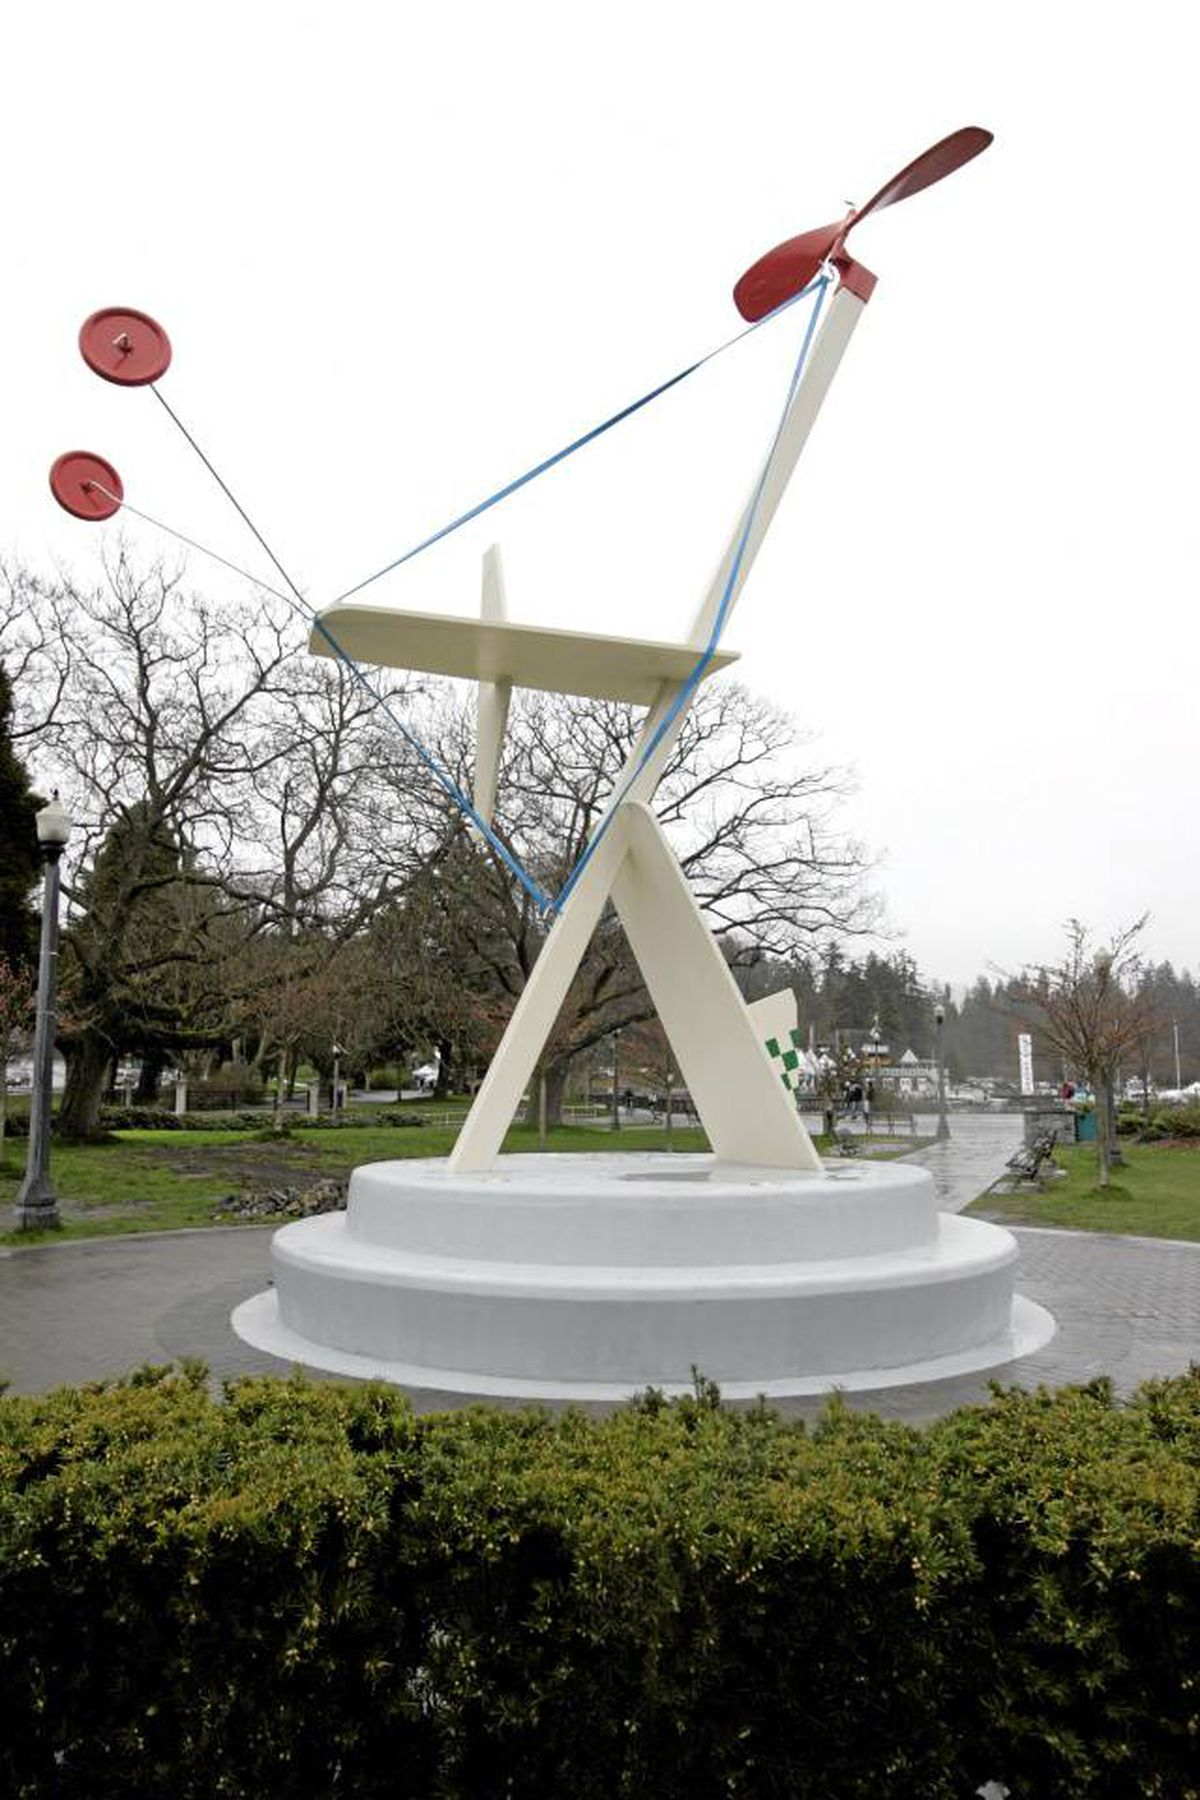 Rodney Graham's Aerodynamic Forms in Space, at the Georgia Street entrance to Vancouver's Stanley Park. Laura Leyshon for the Globe and Mail